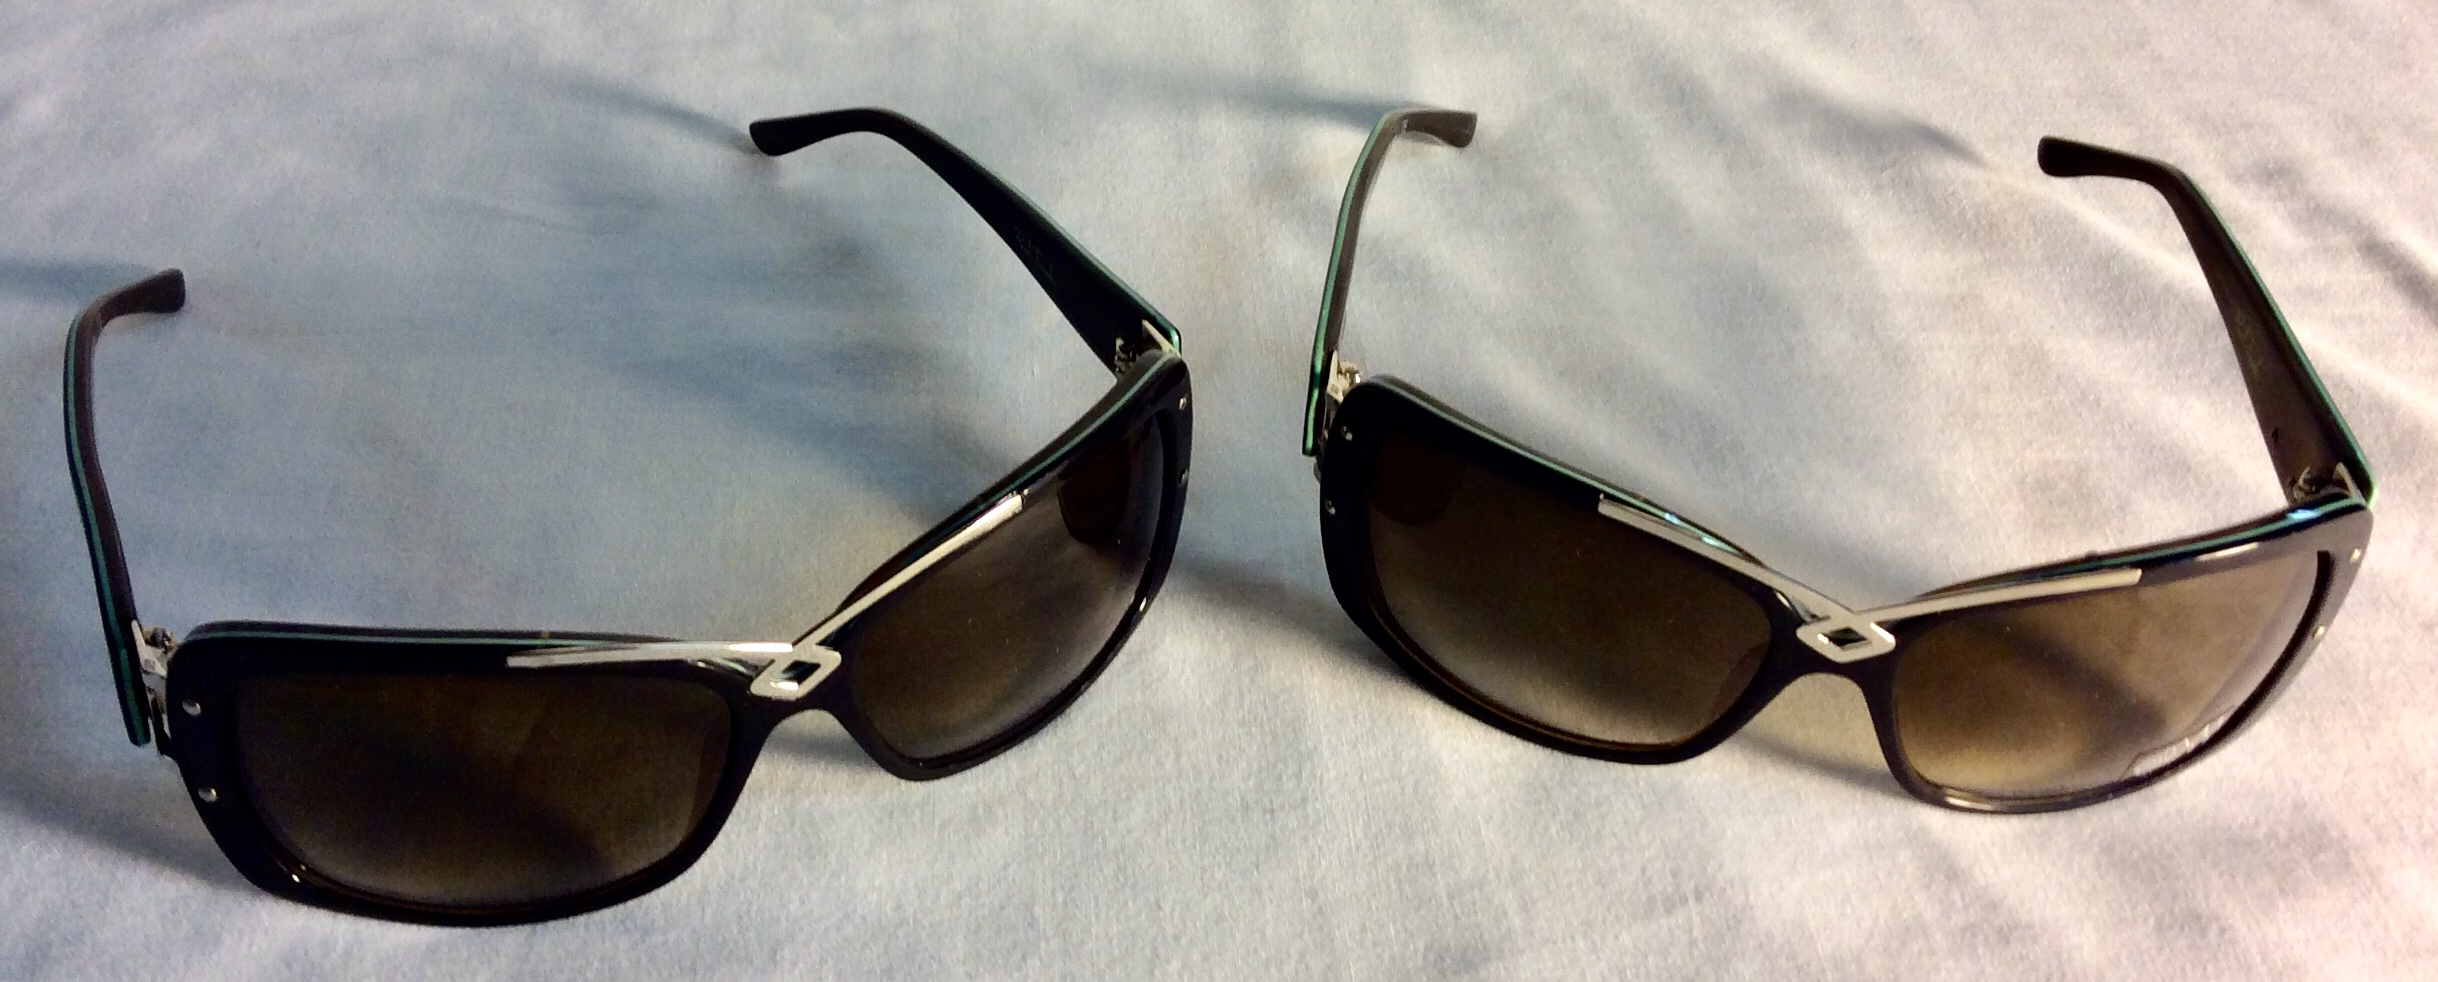 Black and silver sunglasses